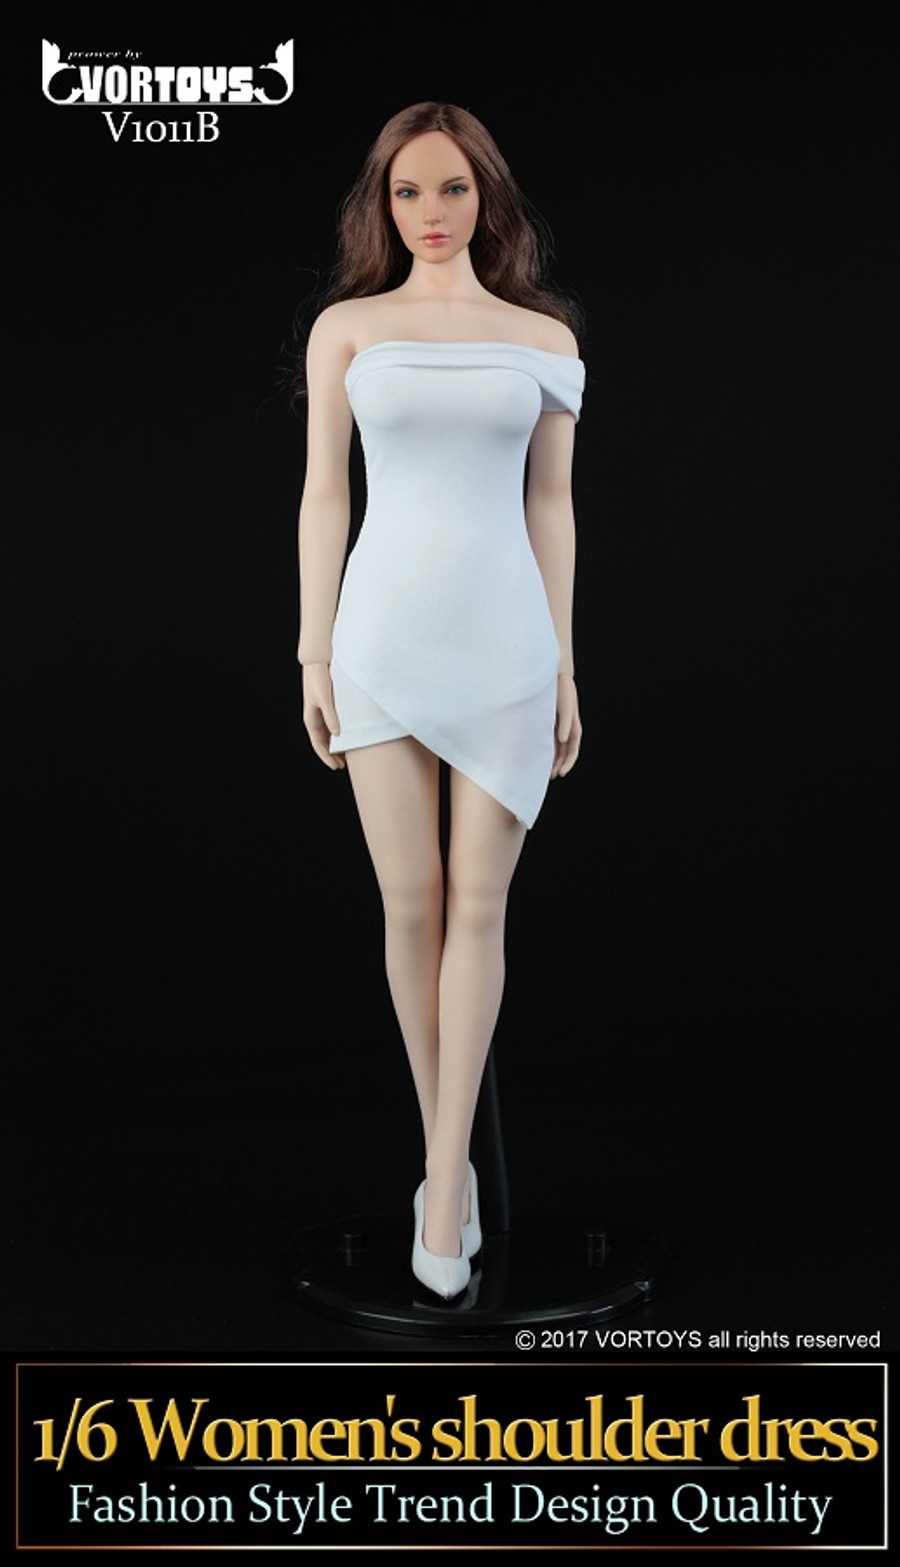 Vortoys - Women's Shoulder Dress